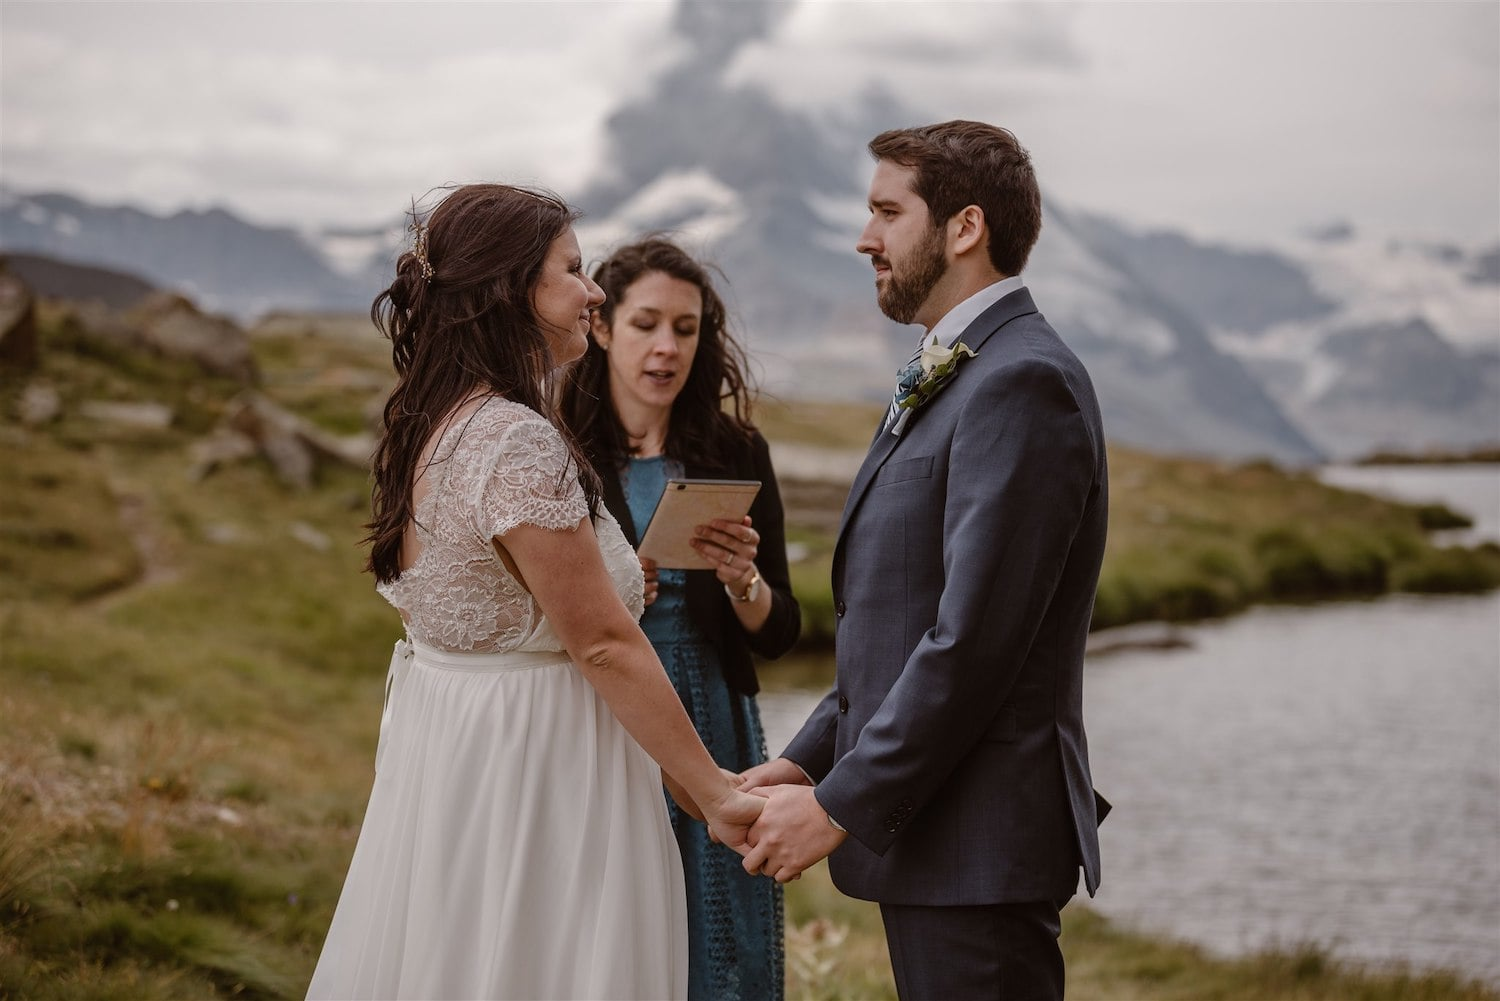 Elopement ceremony in Zermatt with Marylin Rebelo